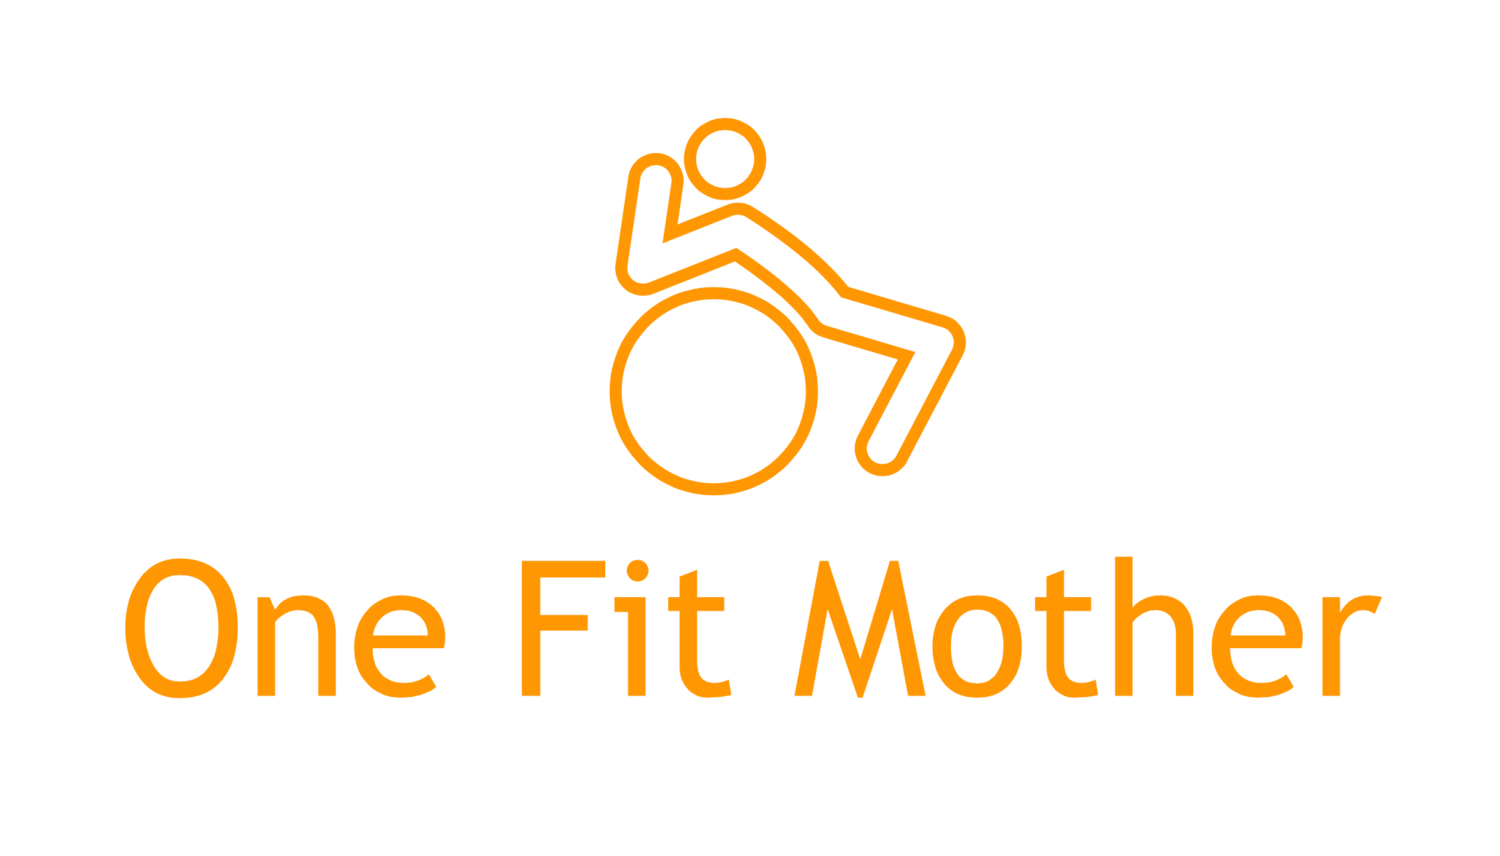 One Fit Mother